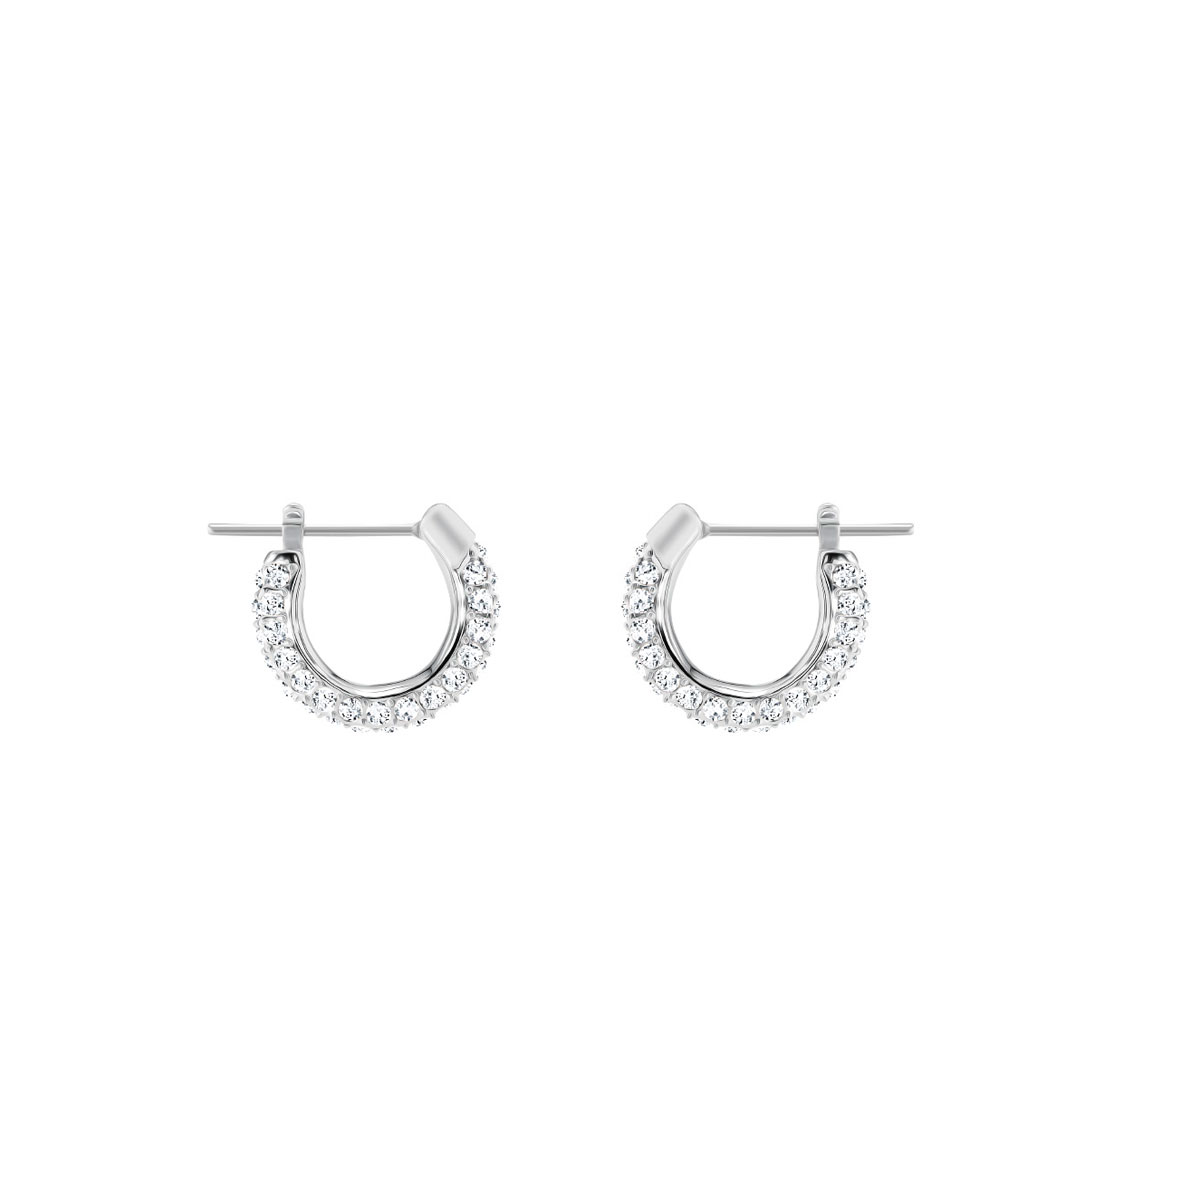 Swarovski Stone Pierced Earrings, White, Rhodium